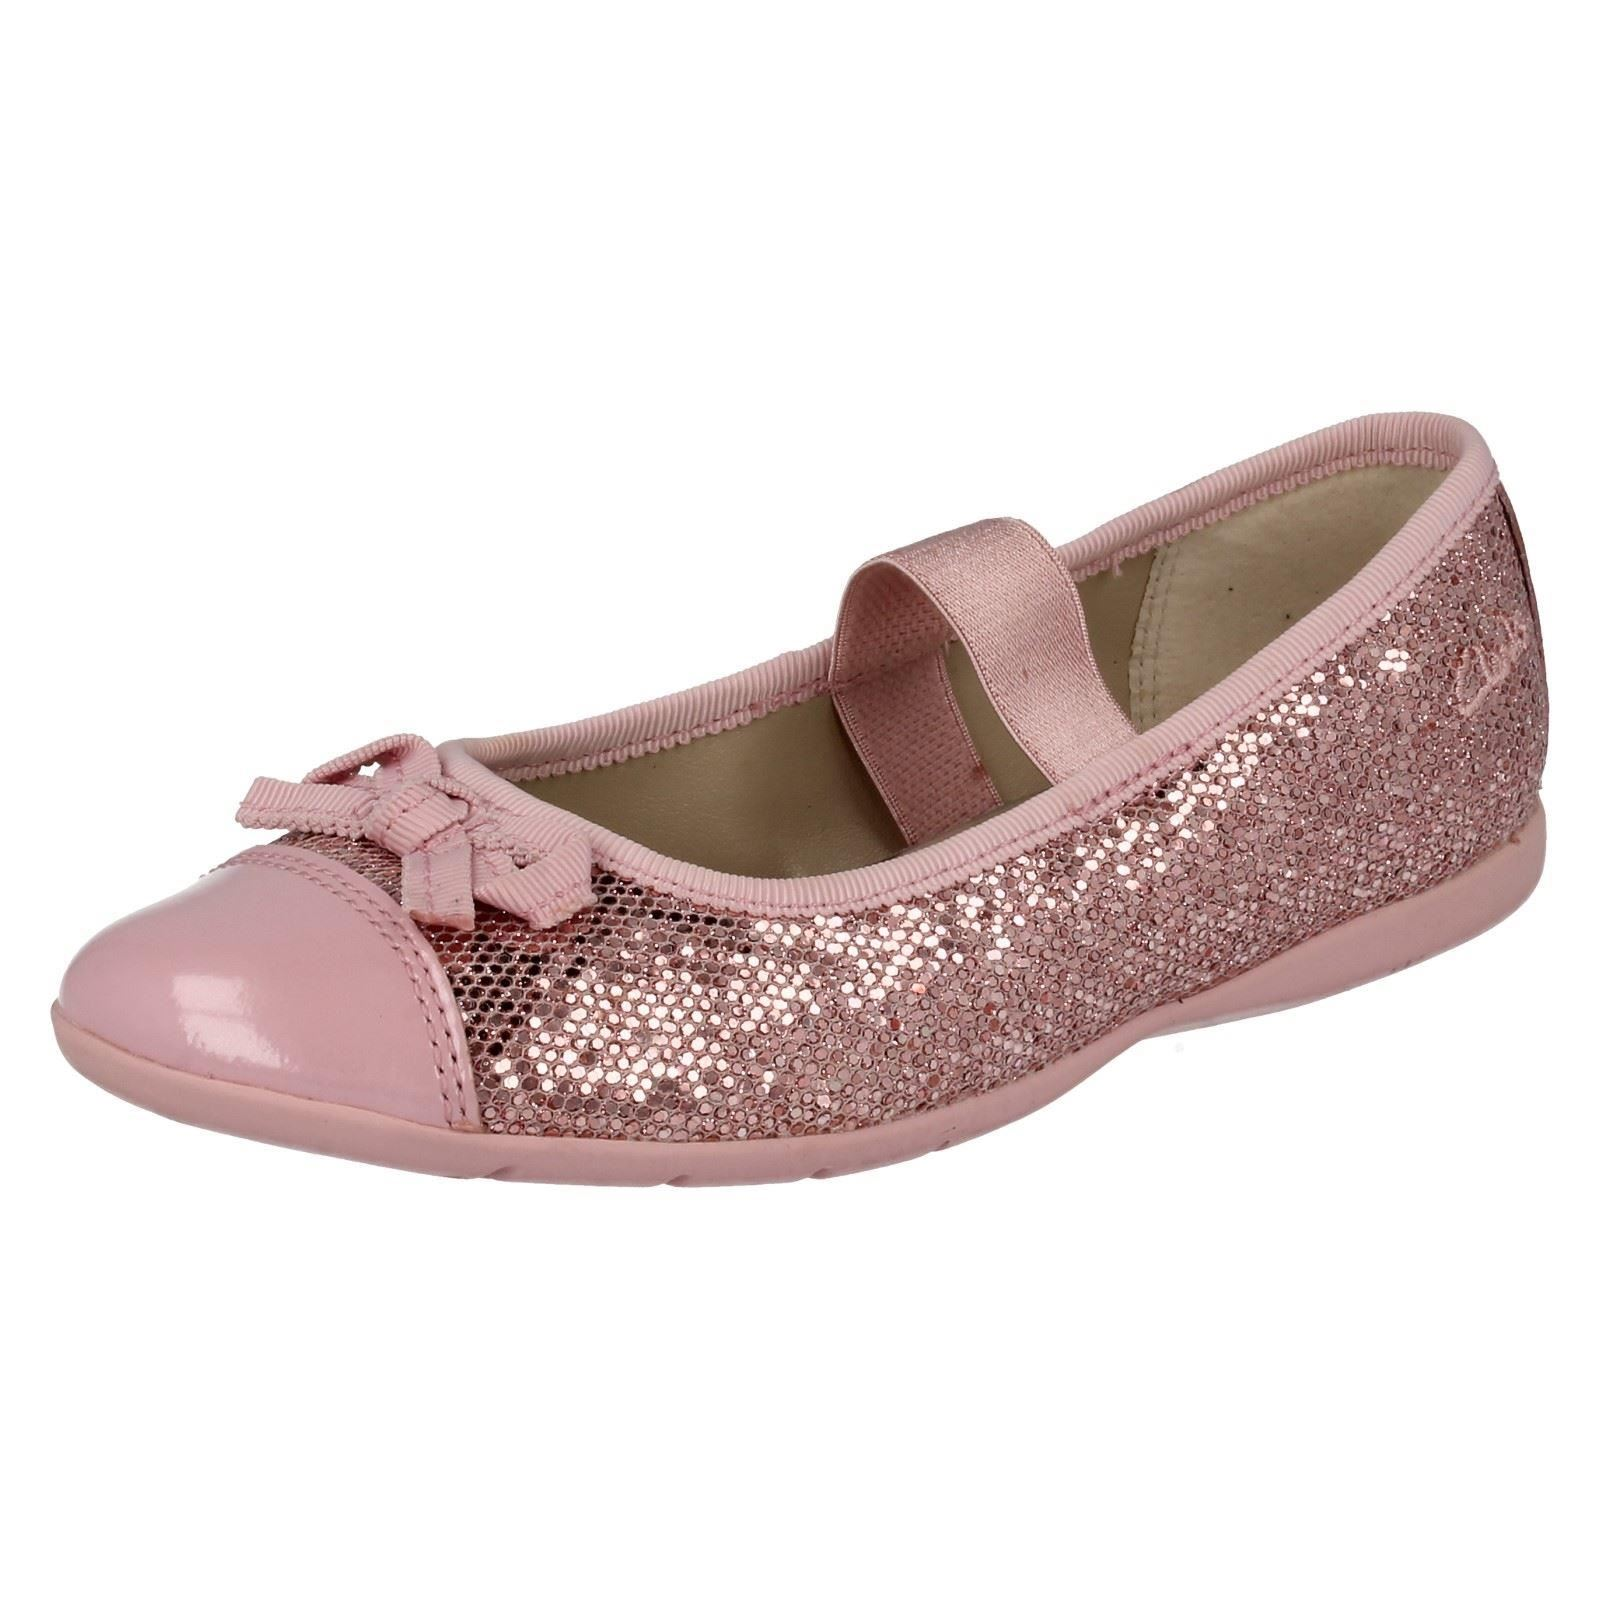 264a280e260d Find girls glitter shoes at ShopStyle. Shop the latest collection of girls glitter  shoes from